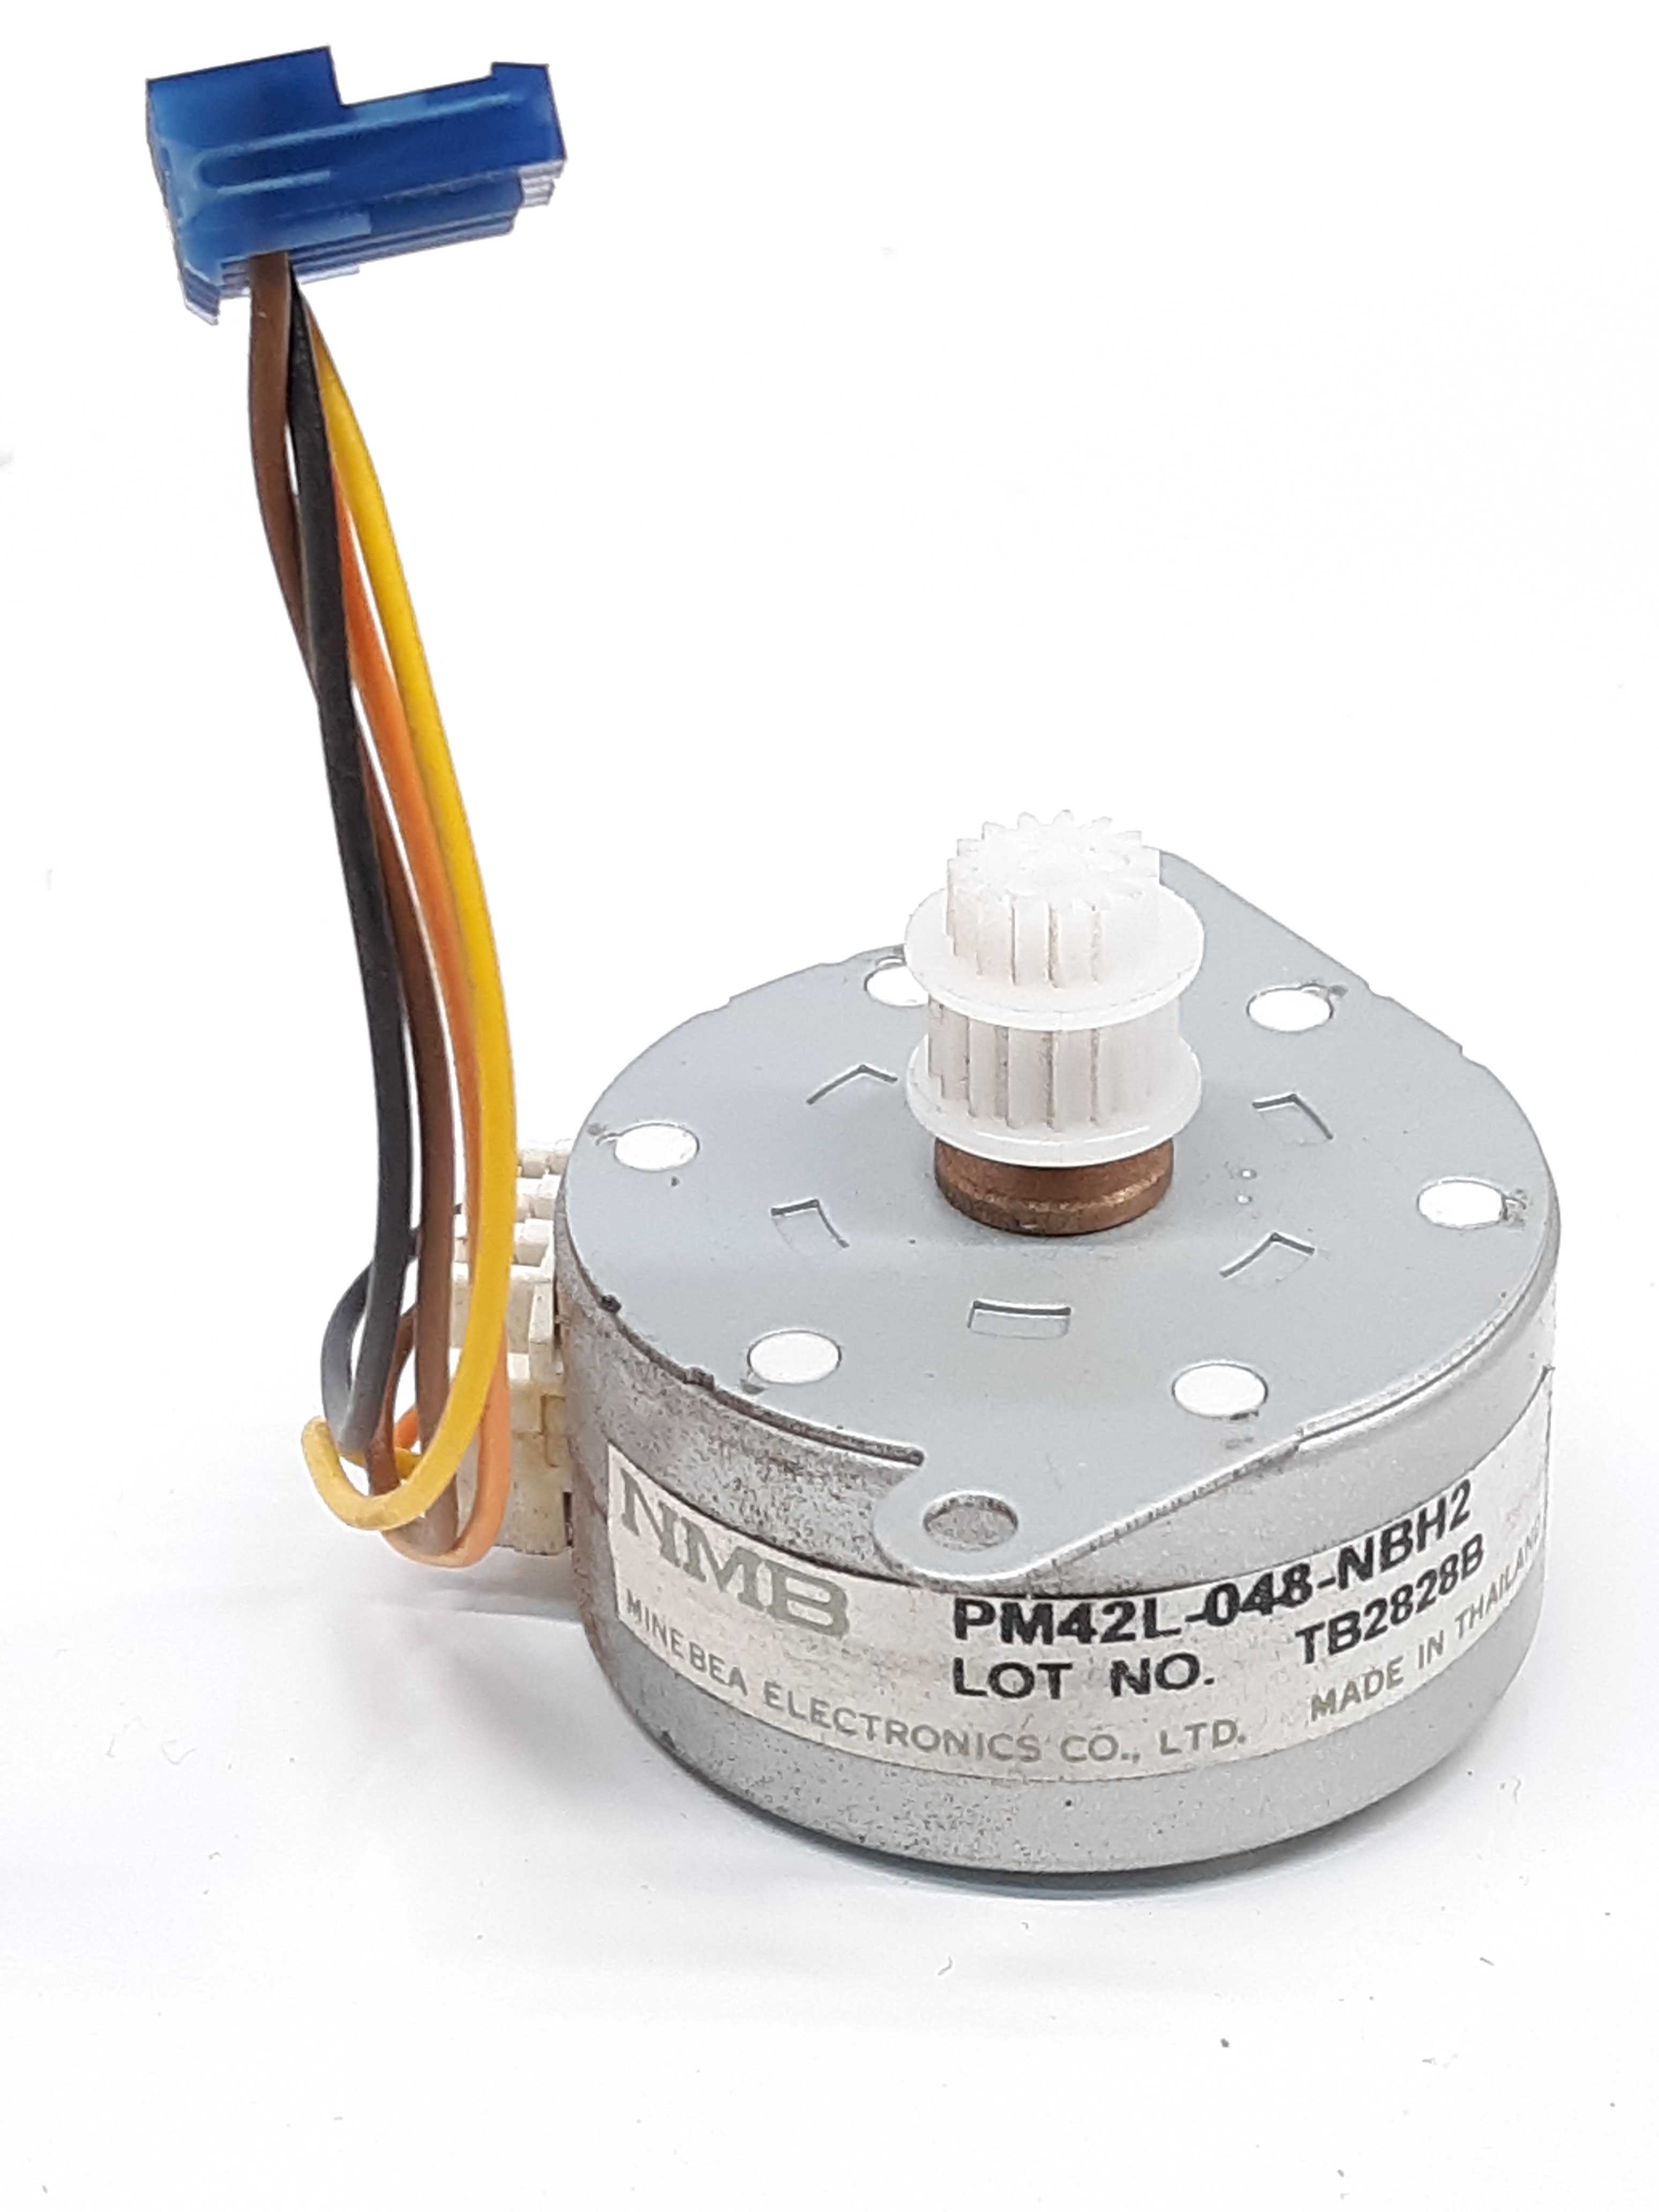 NMB PM42L-048-NBH2 Stepper Motor